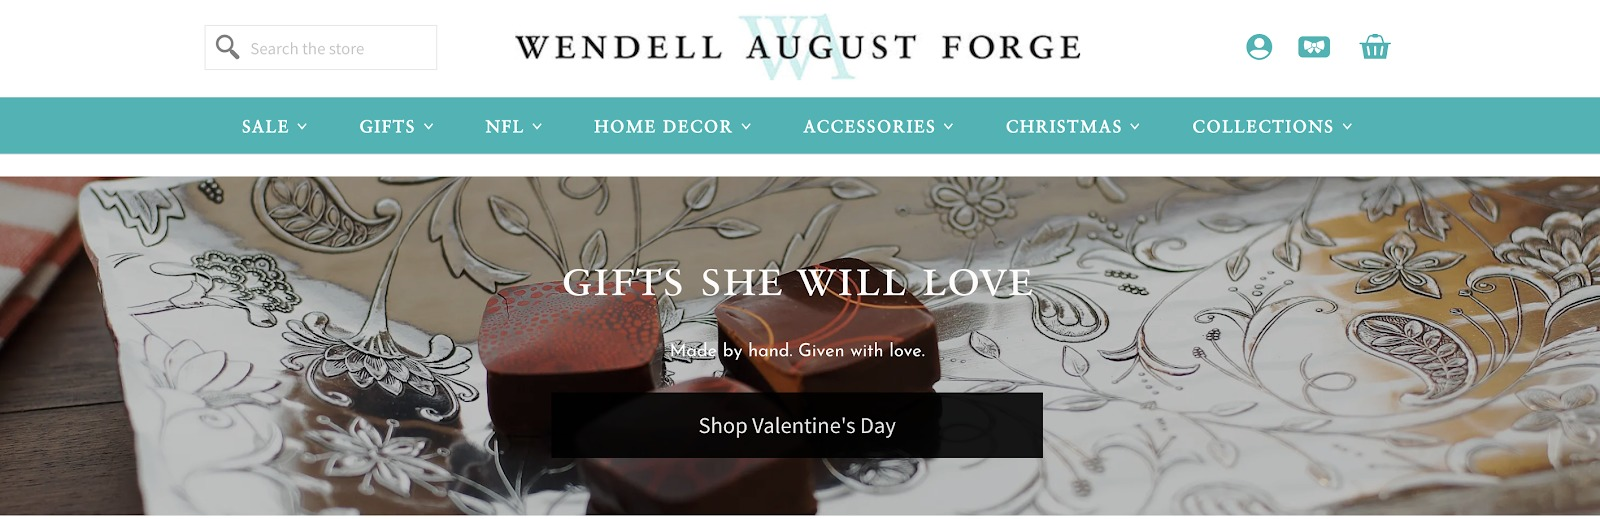 Wendell August Forge VDay Giftguide